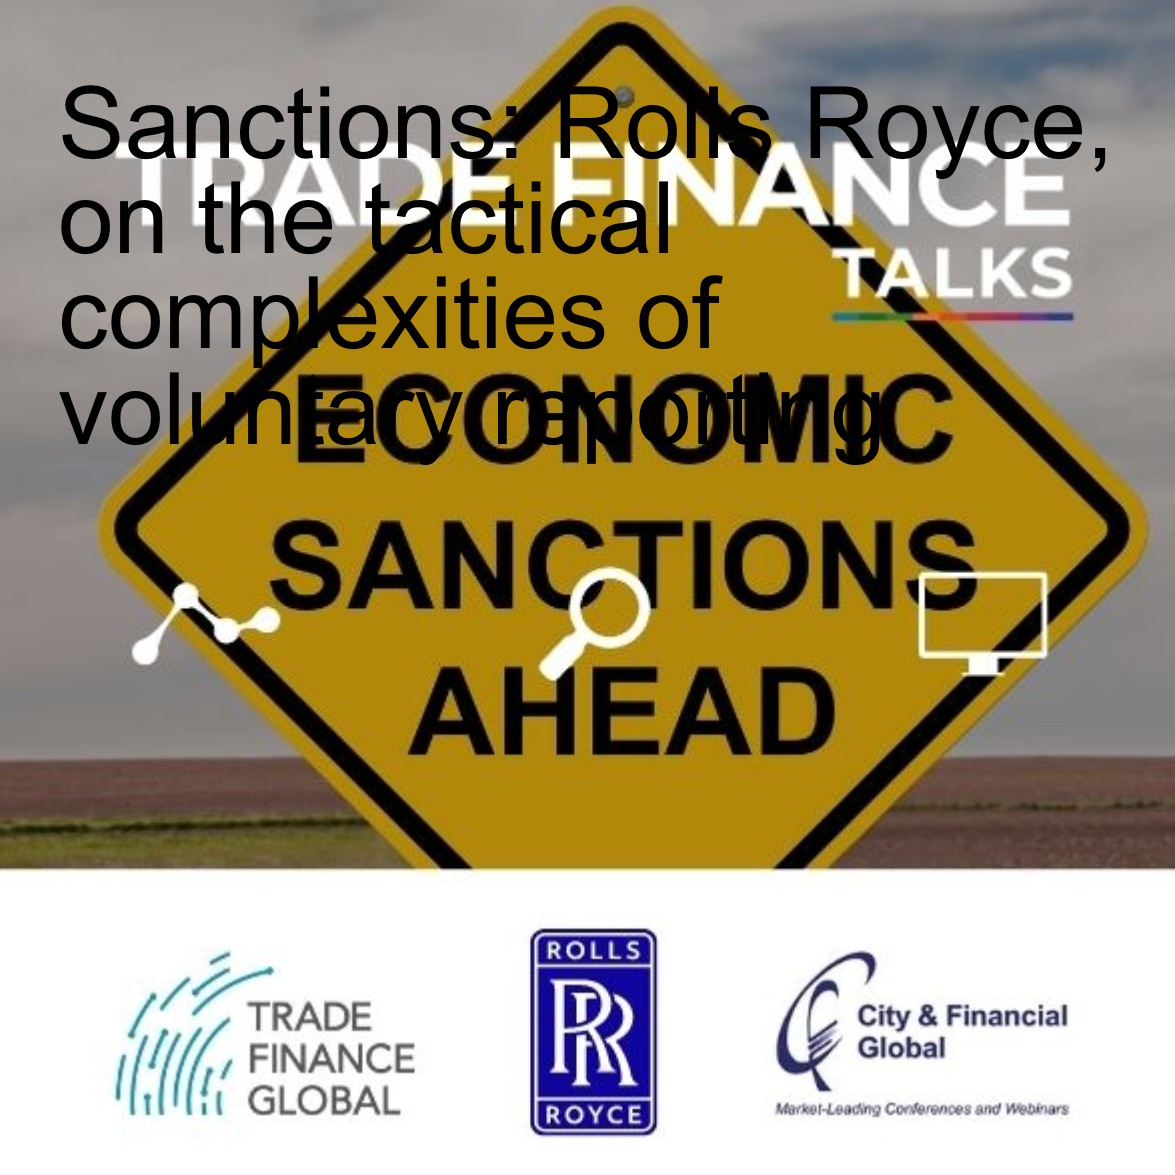 Sanctions: Rolls Royce, on the tactical complexities of voluntary reporting